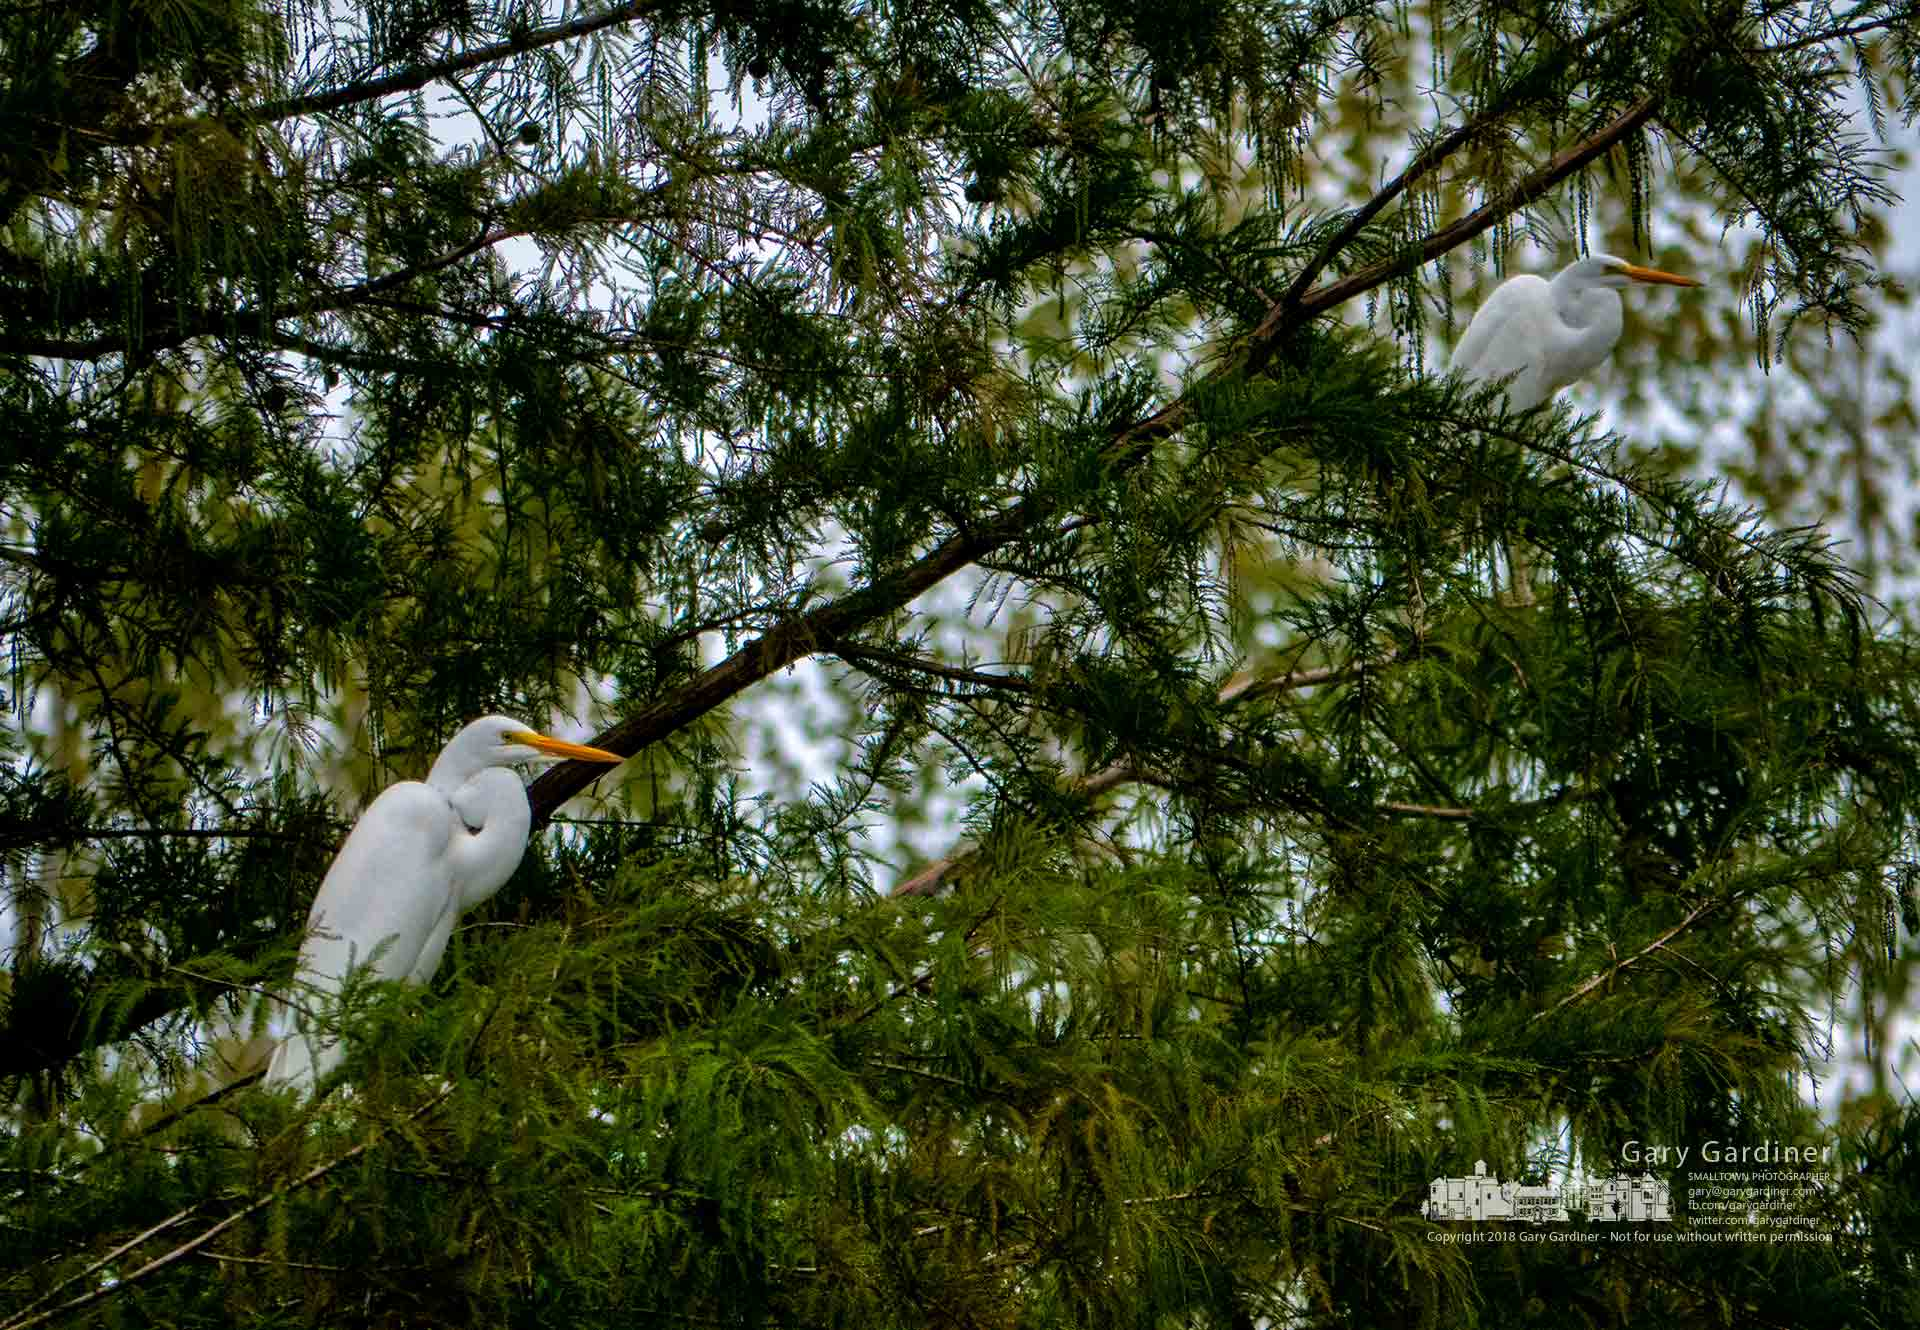 A pair of white egrets sits in one of the cypress trees along the bike path over the Highlands Park wetlands where recent rains have flooded the pond changing their hunting patterns. My Final Photo for Sept. 25, 2018.